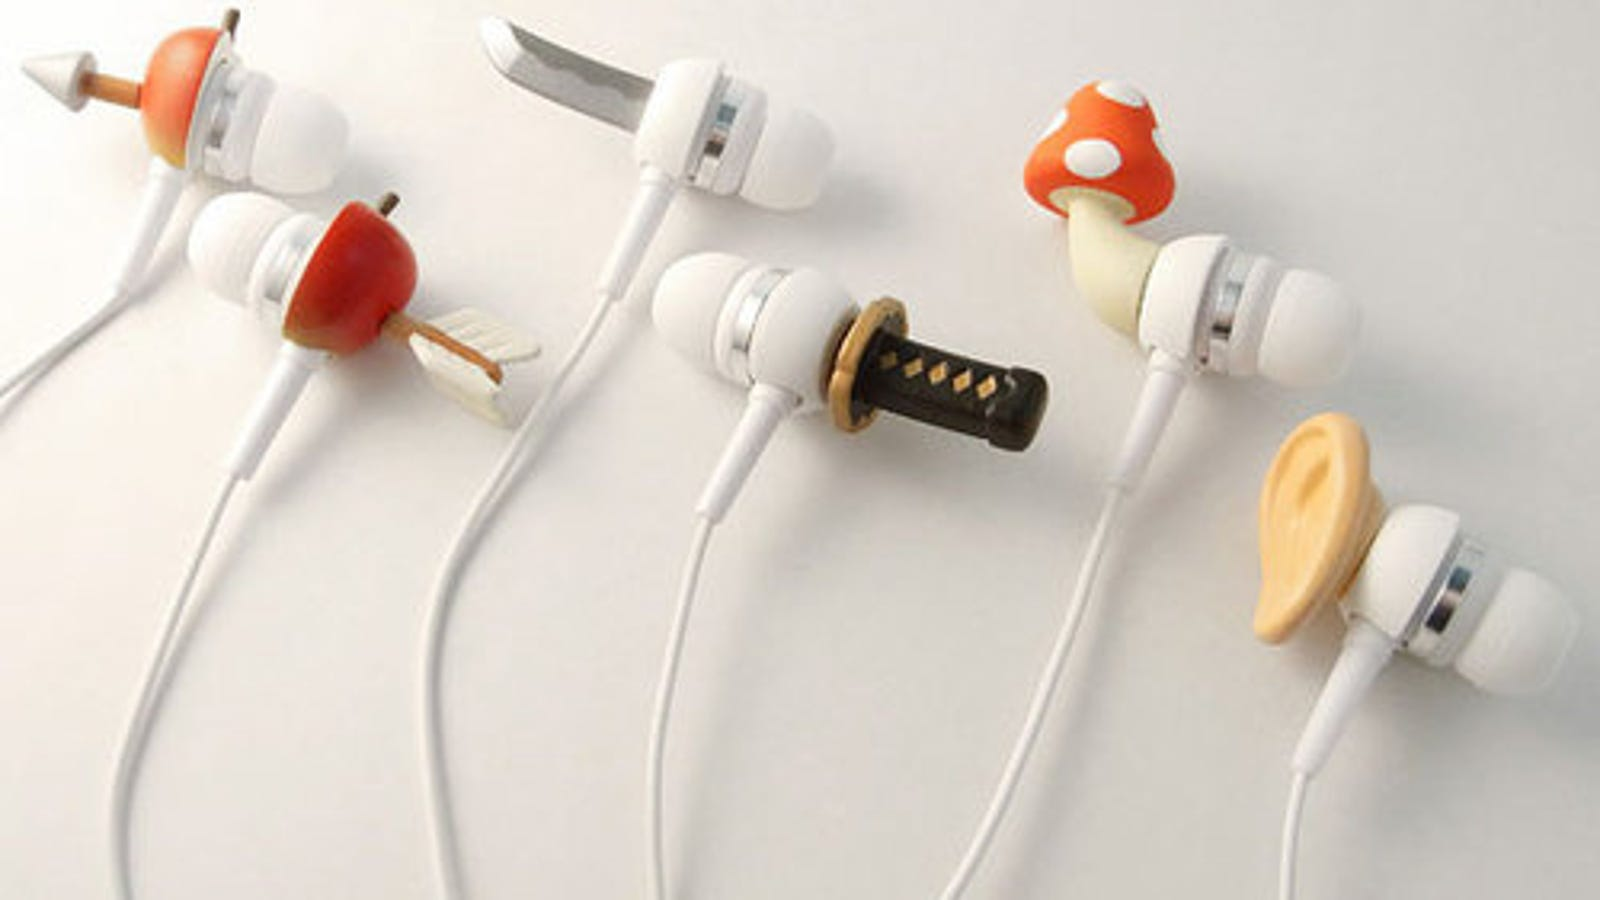 sony earphones iphone 6